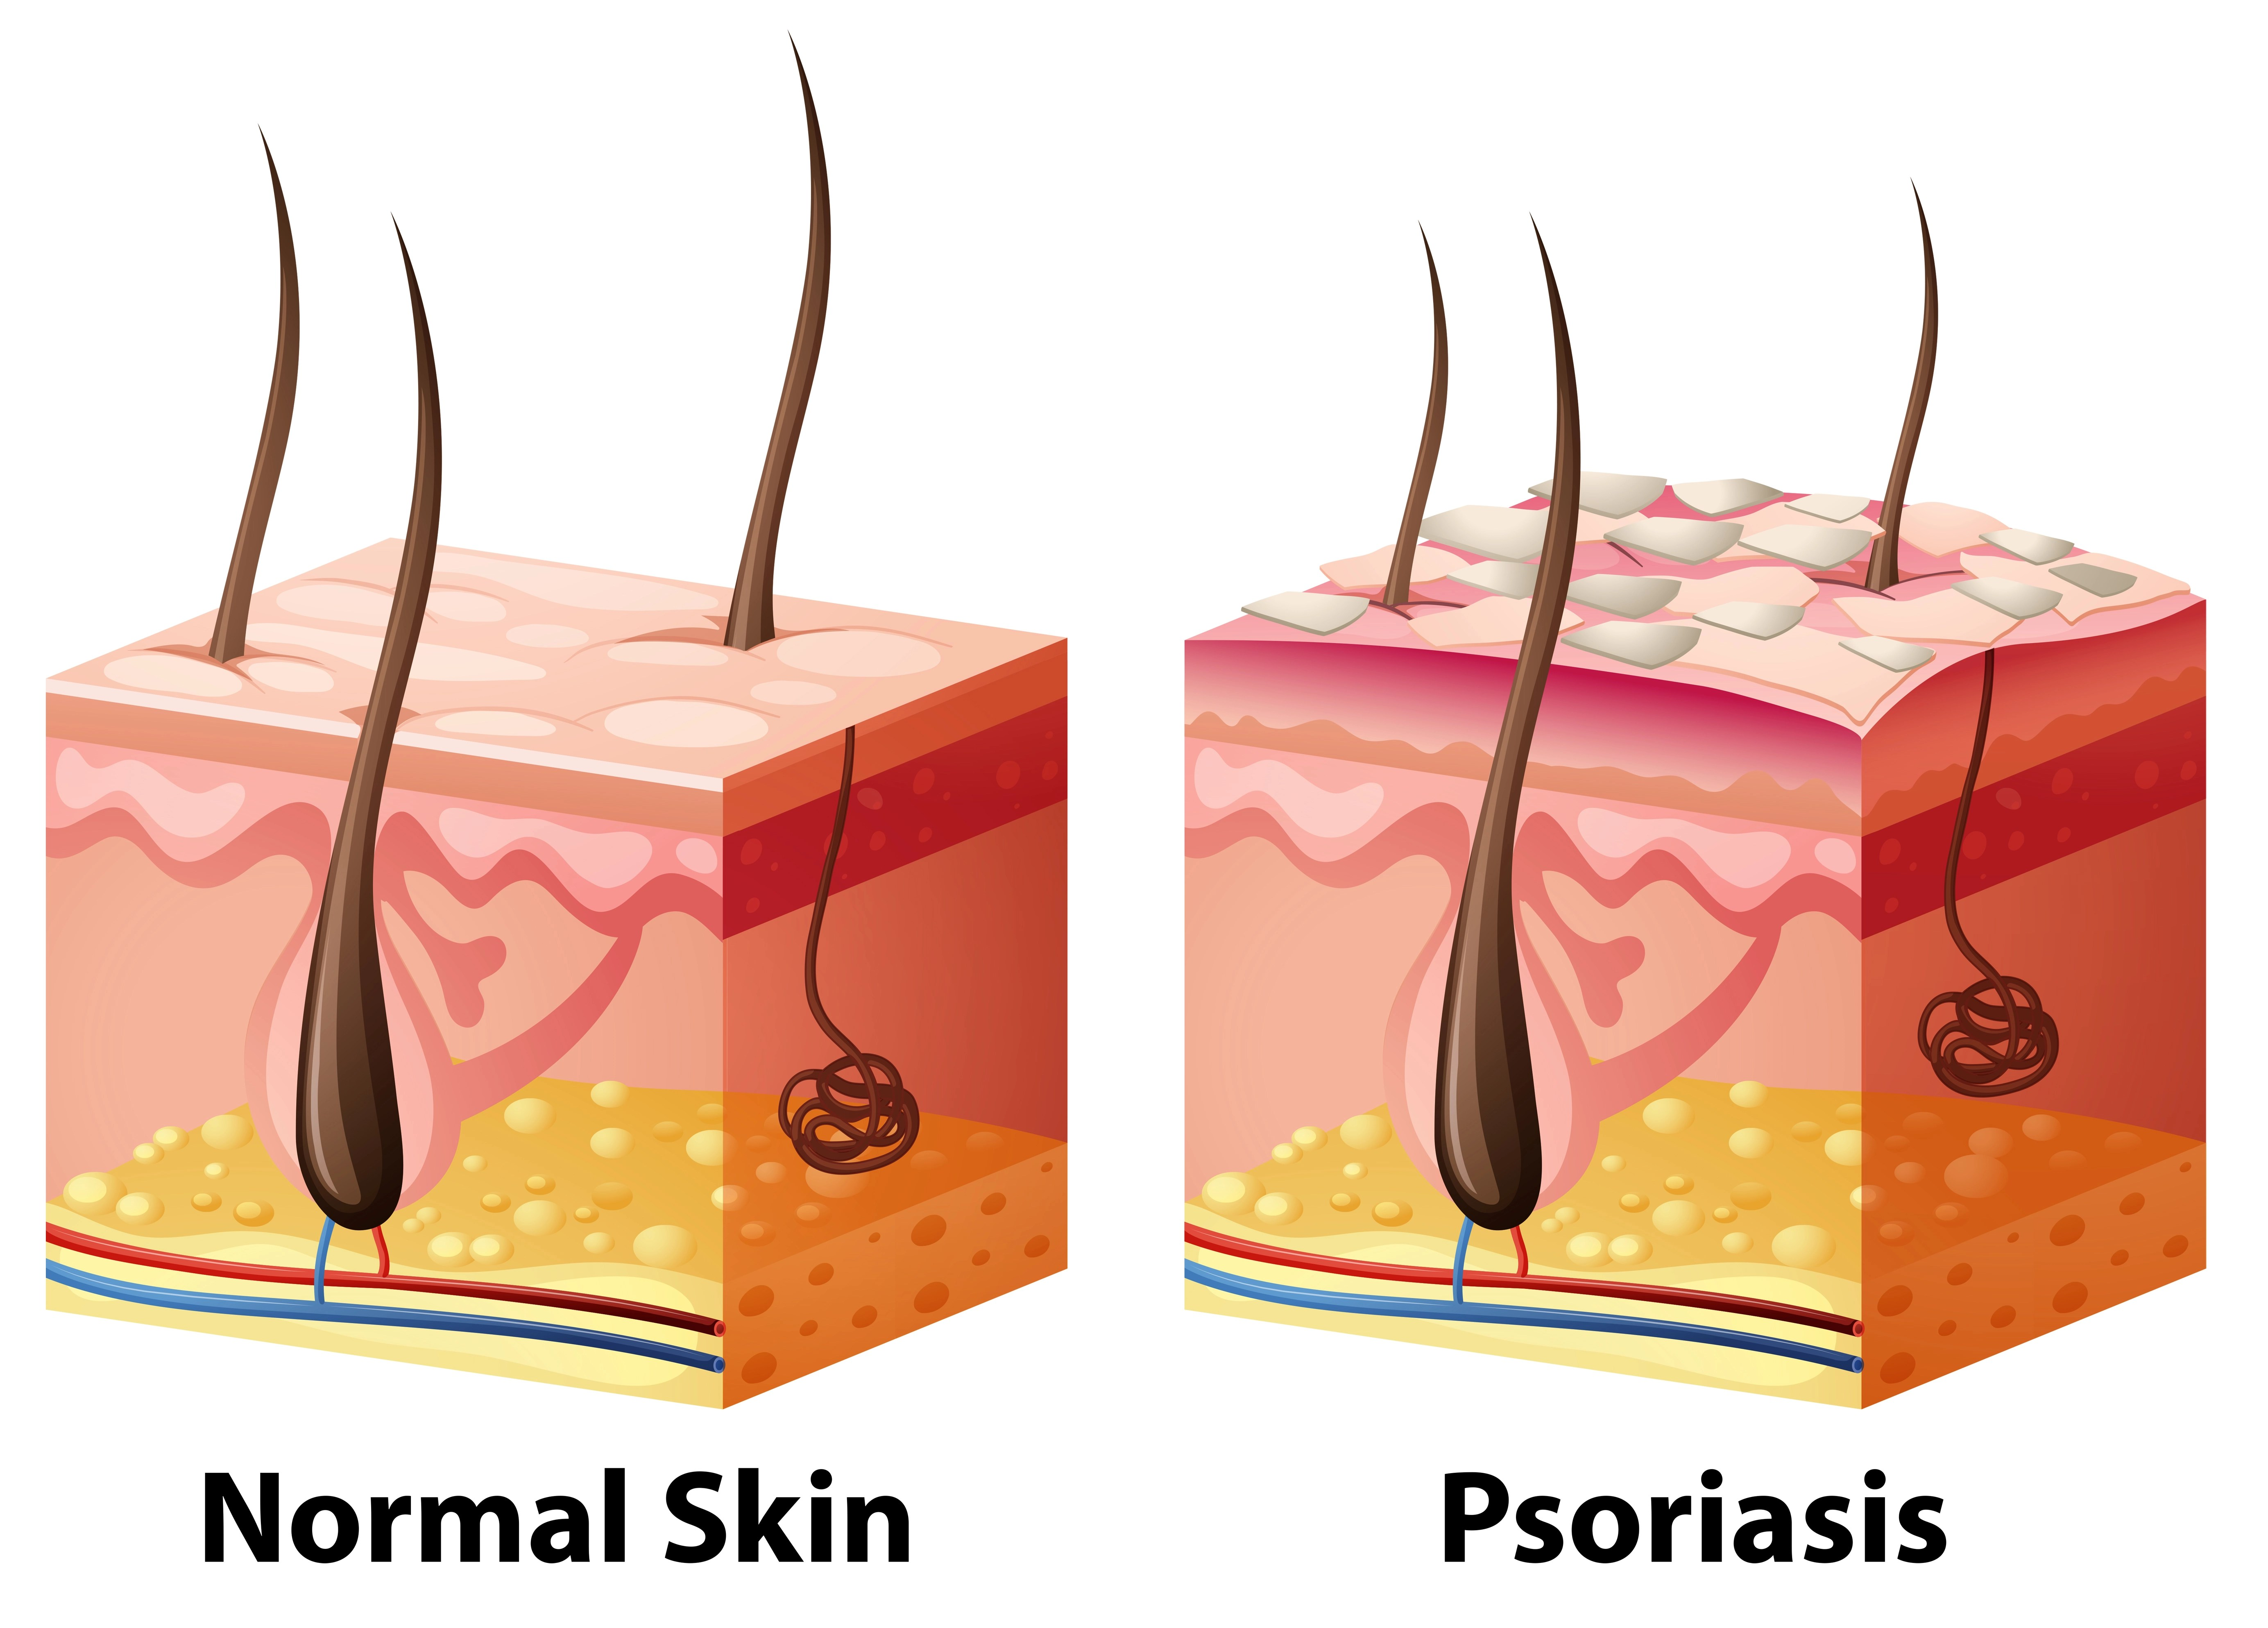 Human Skin Diagram With Normal And Psoriasis